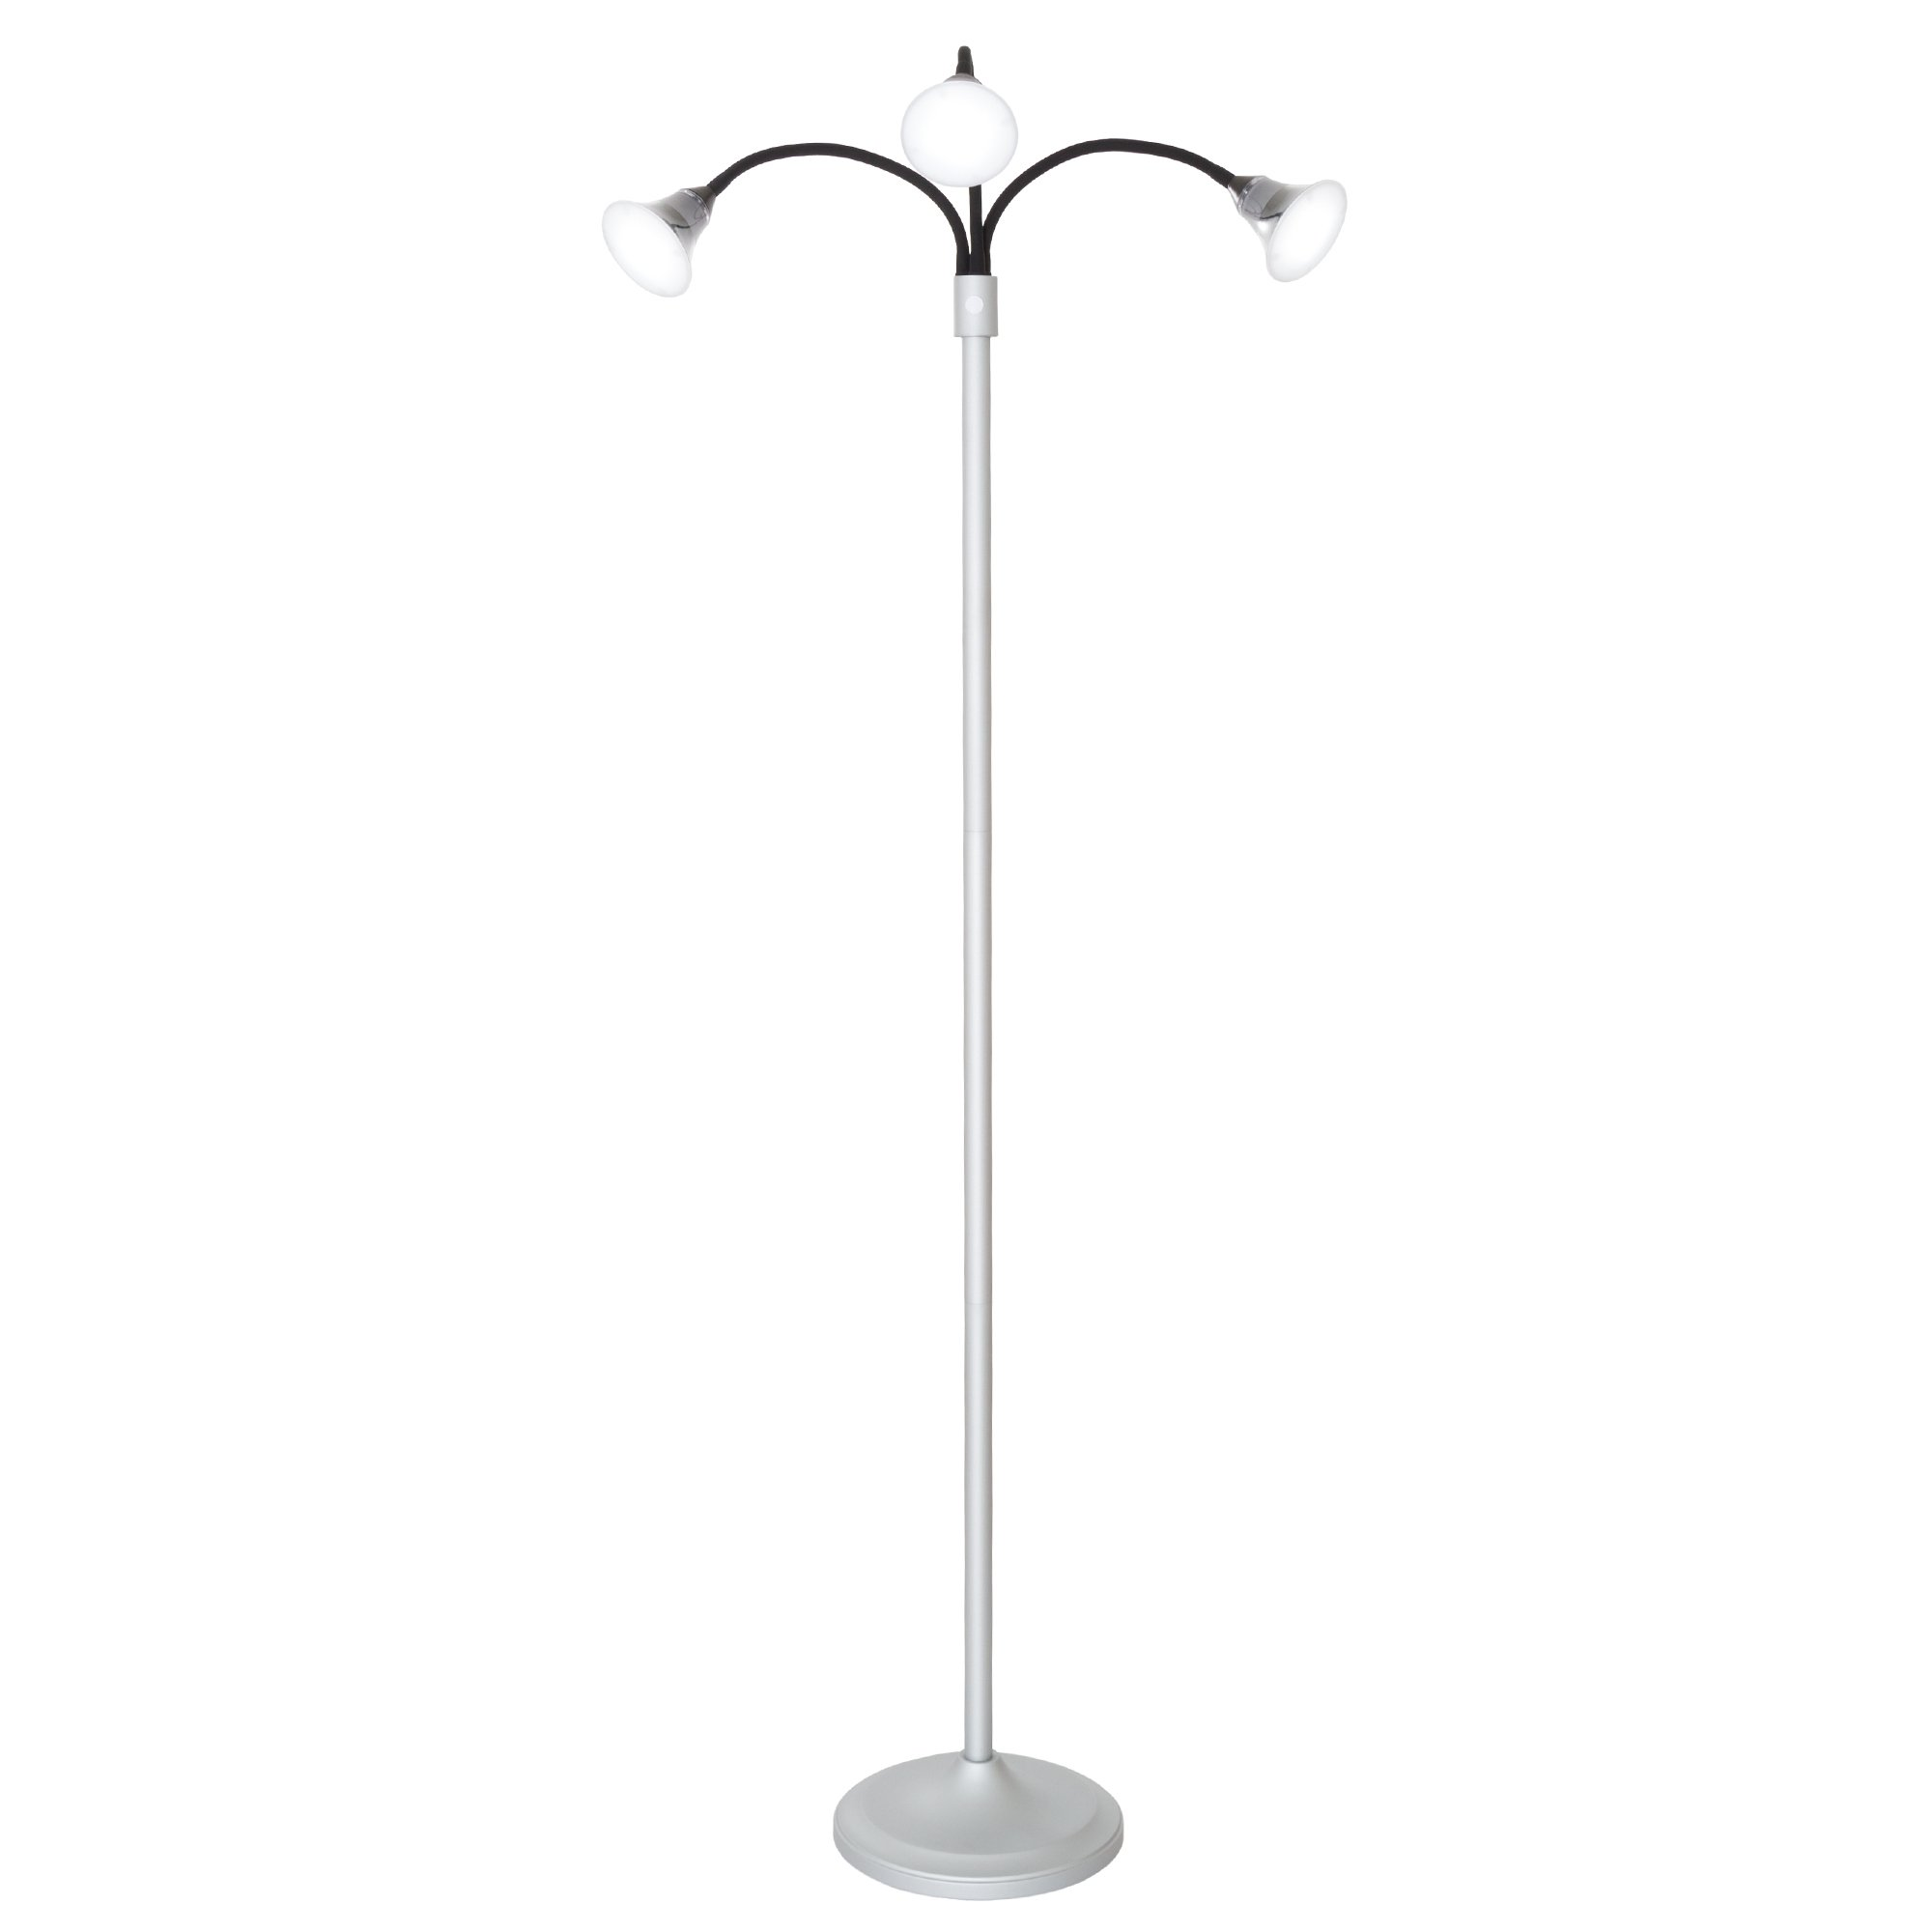 3 Head Floor Lamp, LED Light with Adjustable Arms, Touch Switch and Dimmer (Silver) by Lavish Home